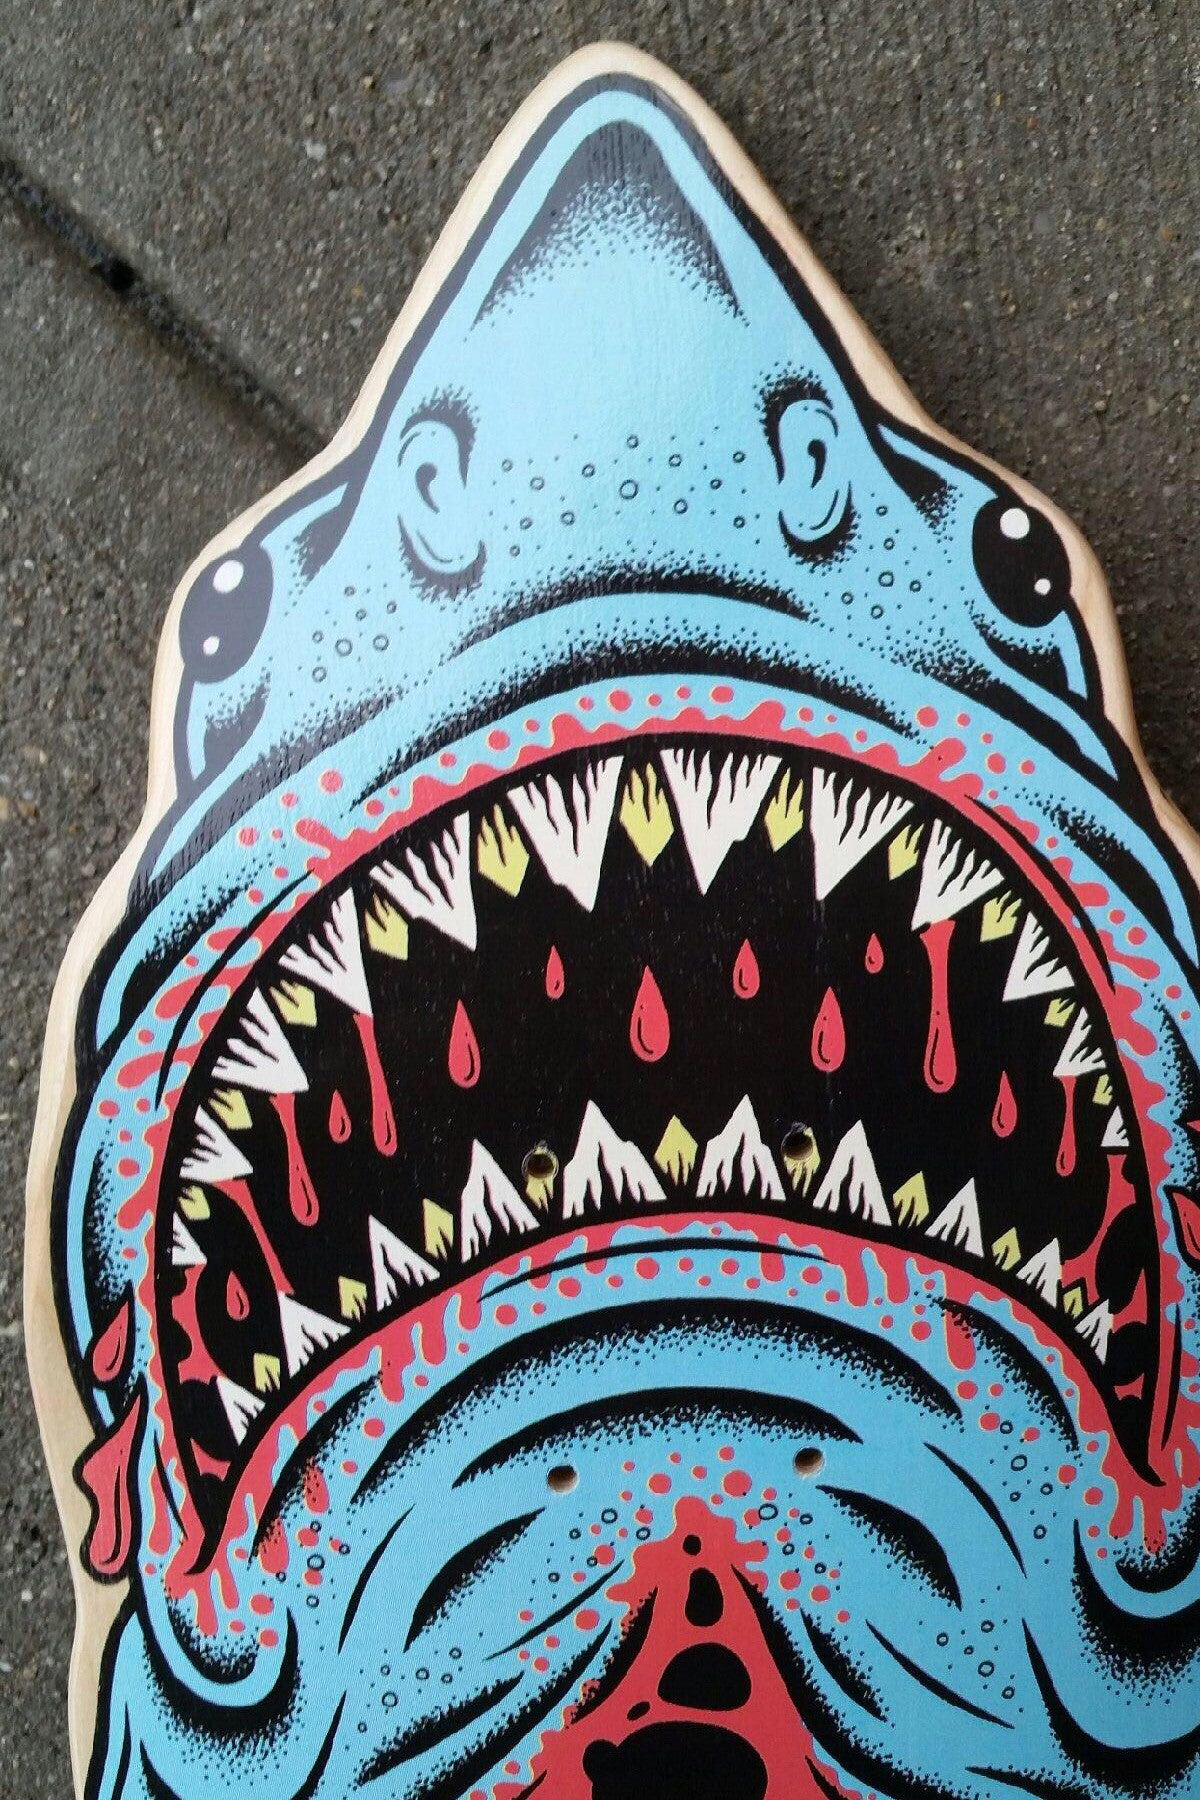 Tasty X 'Gansett Custom Shark Deck